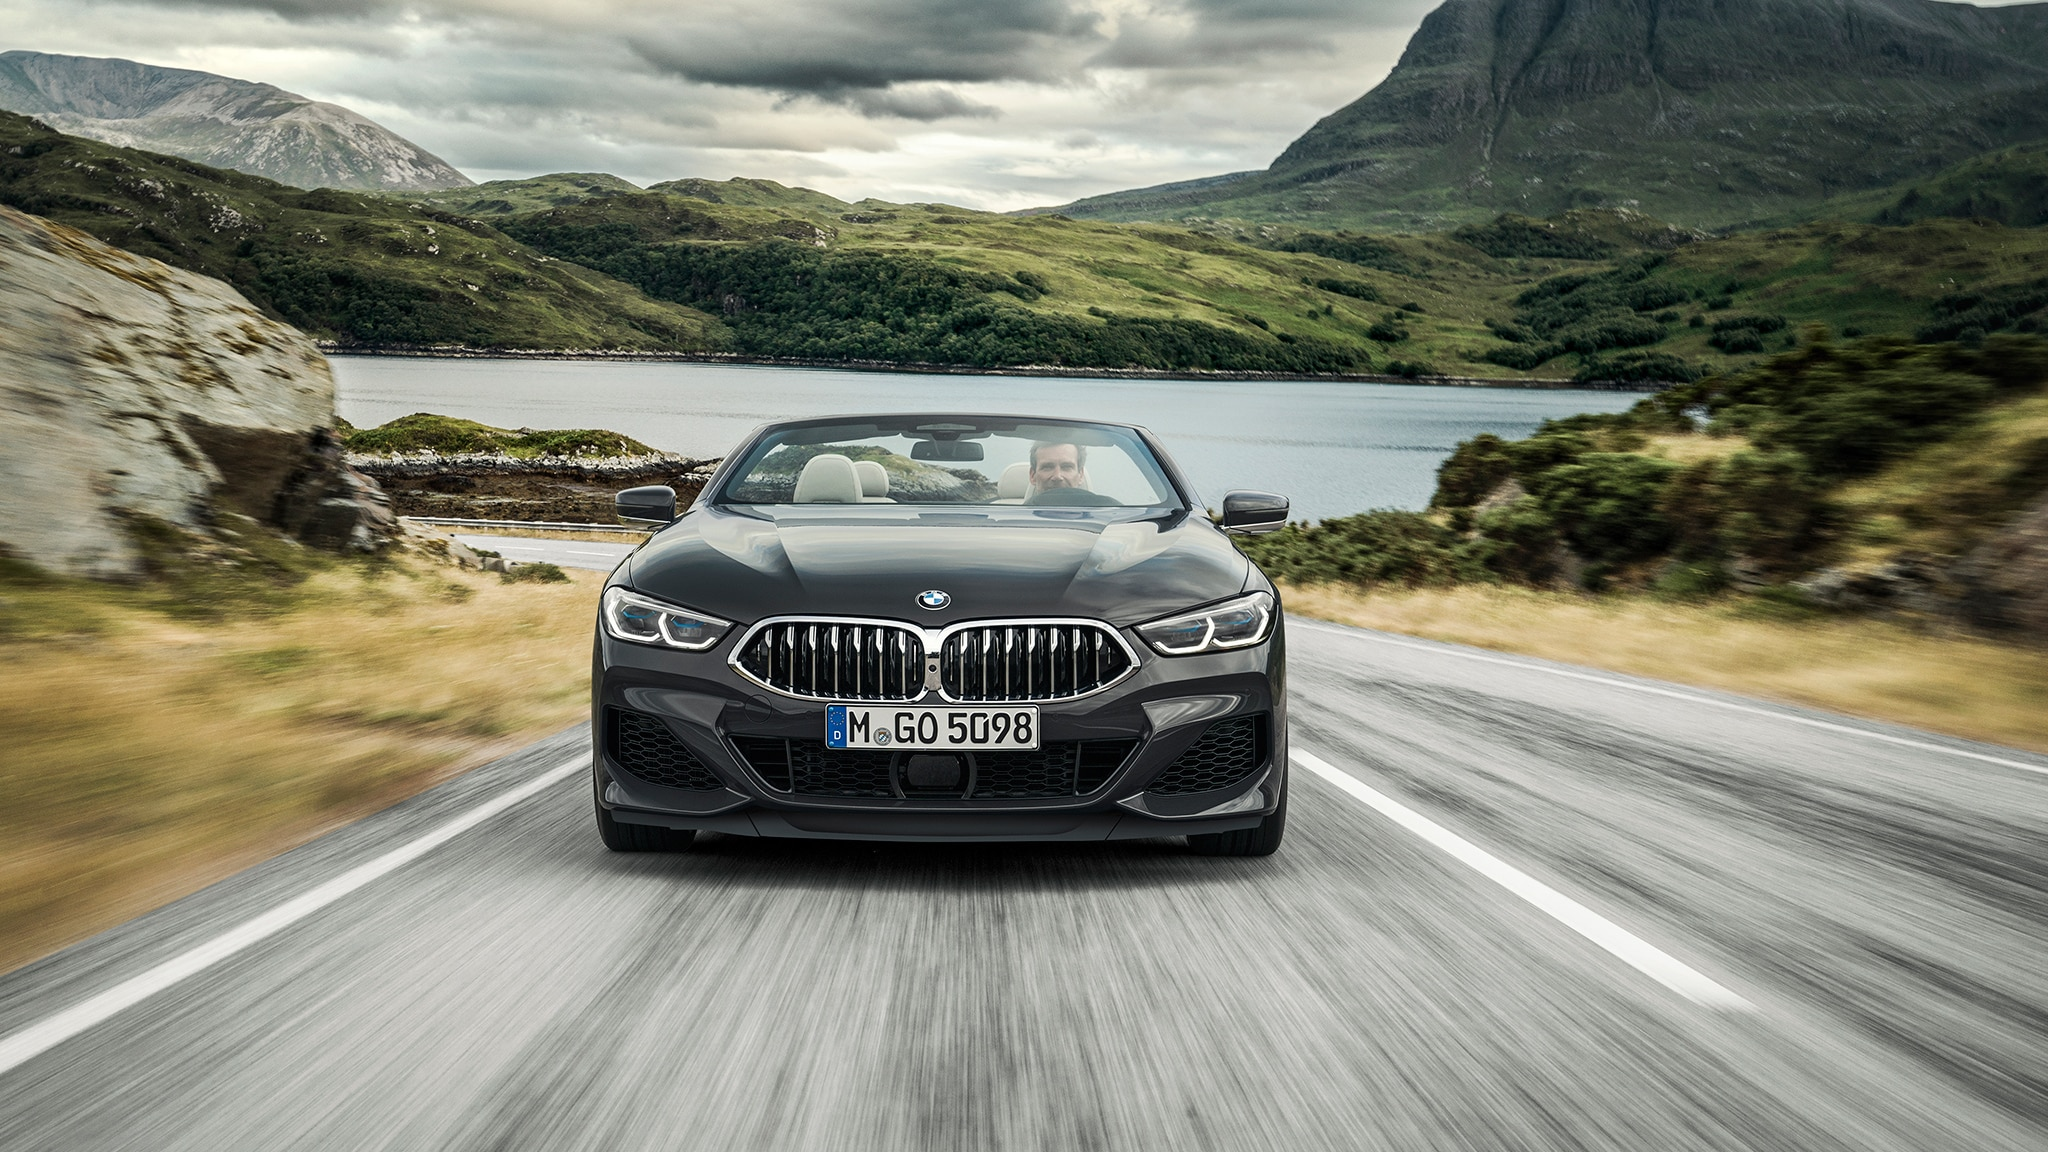 2019 BMW M850i Convertible Front View On Road